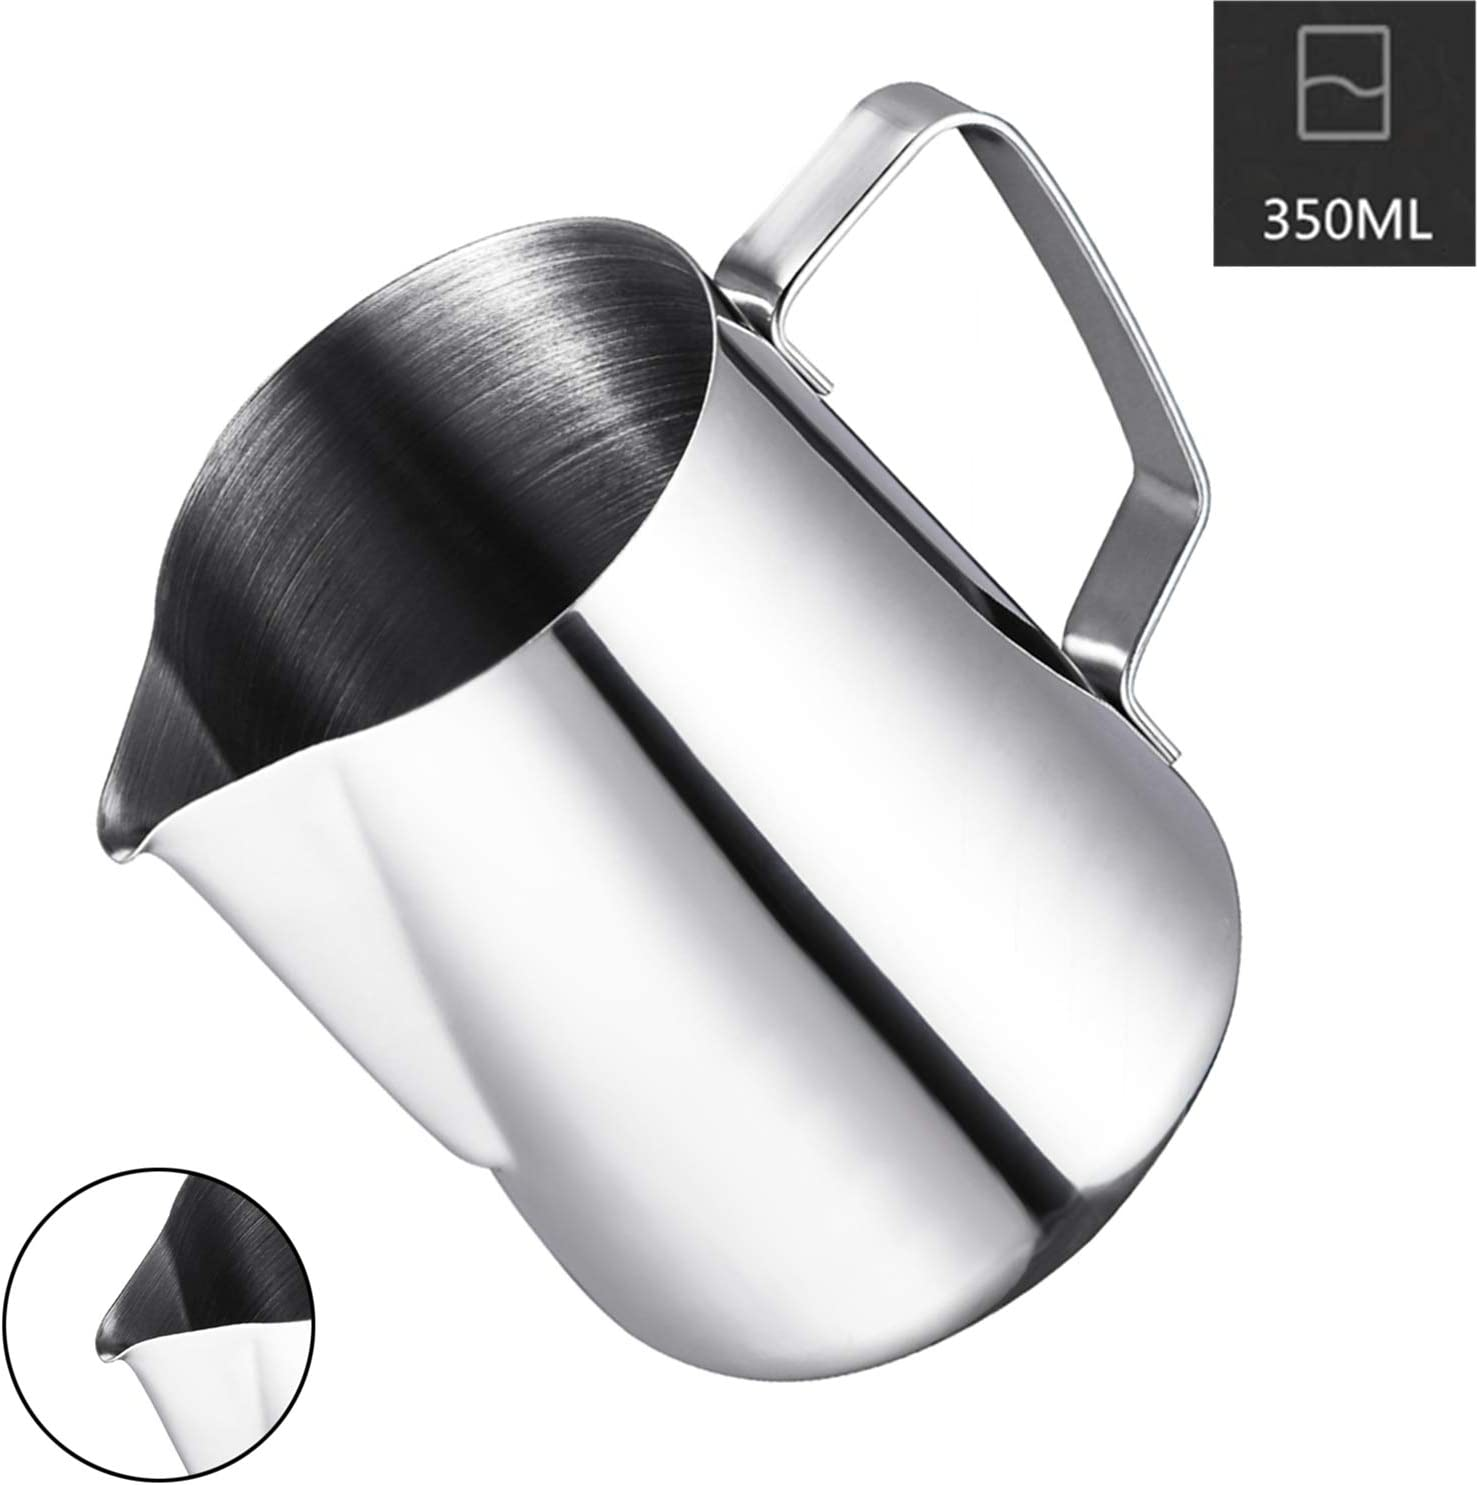 Milk Frothing Pitcher, Coffee4u Stainless Steel Latte Art Creamer Cup Silver 12 oz (350 ml) for Espresso Machines,Mirror Finished